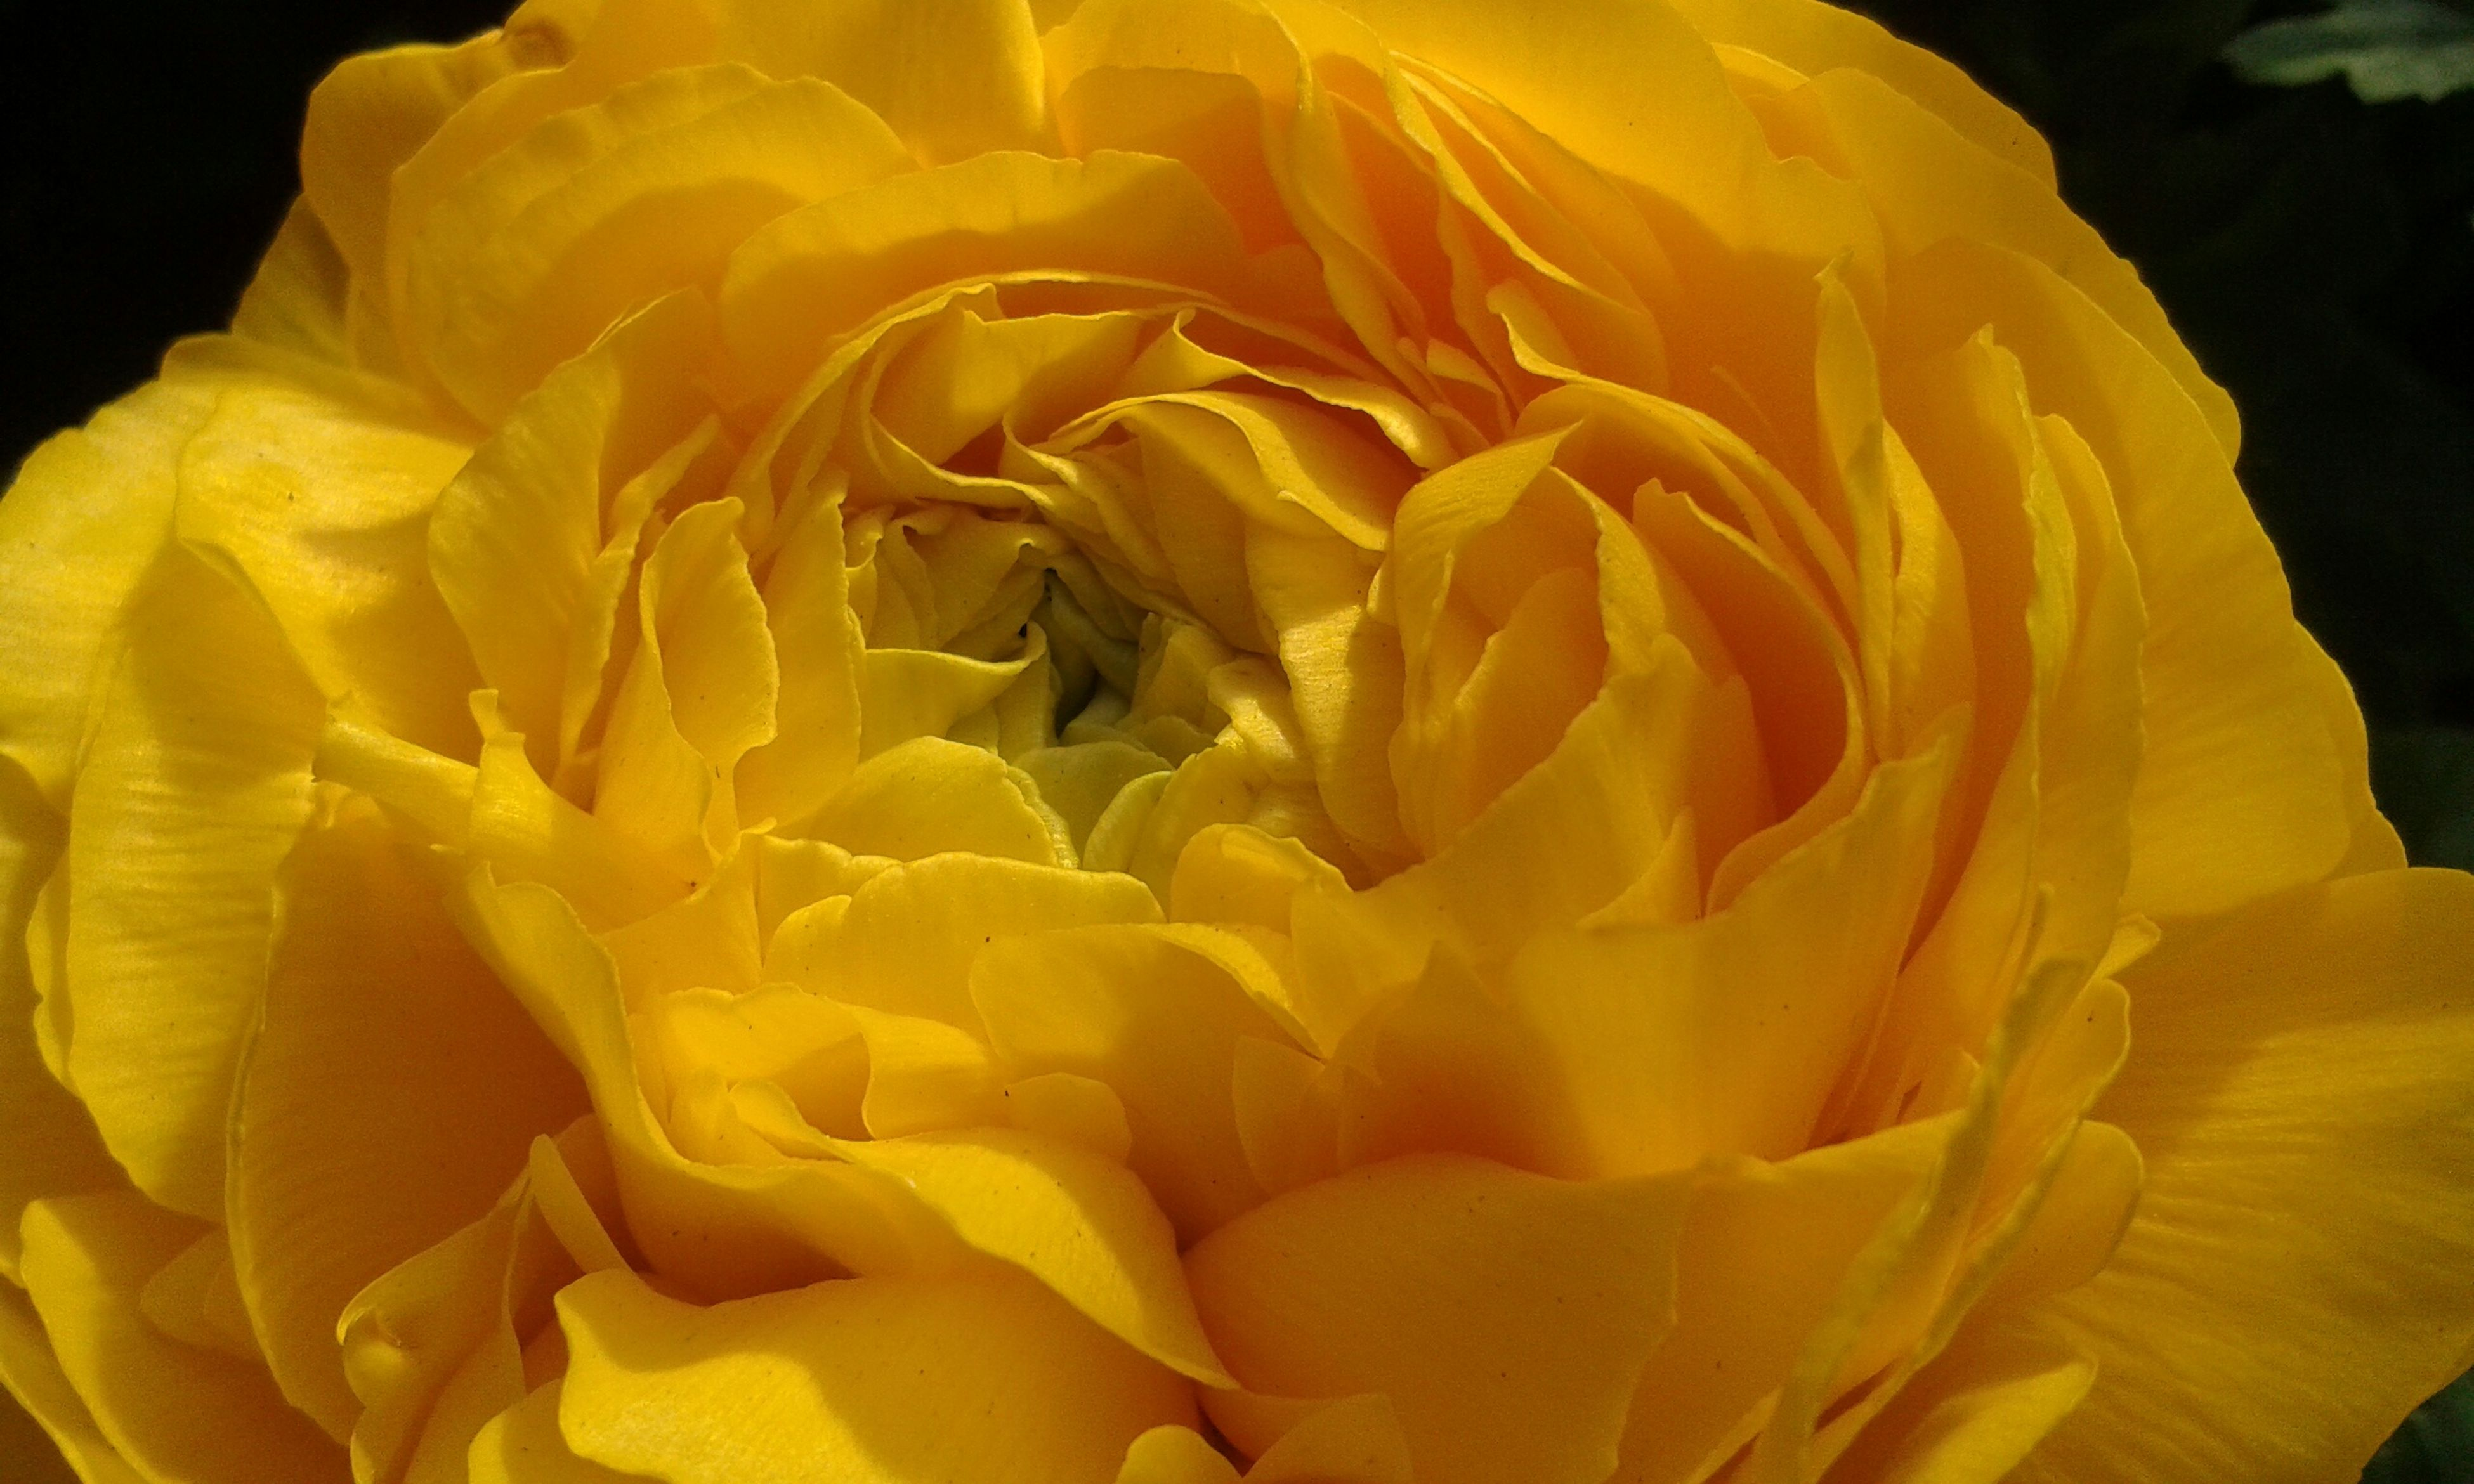 flower, petal, flower head, freshness, fragility, yellow, beauty in nature, close-up, rose - flower, growth, single flower, nature, blooming, black background, studio shot, plant, in bloom, natural pattern, blossom, orange color